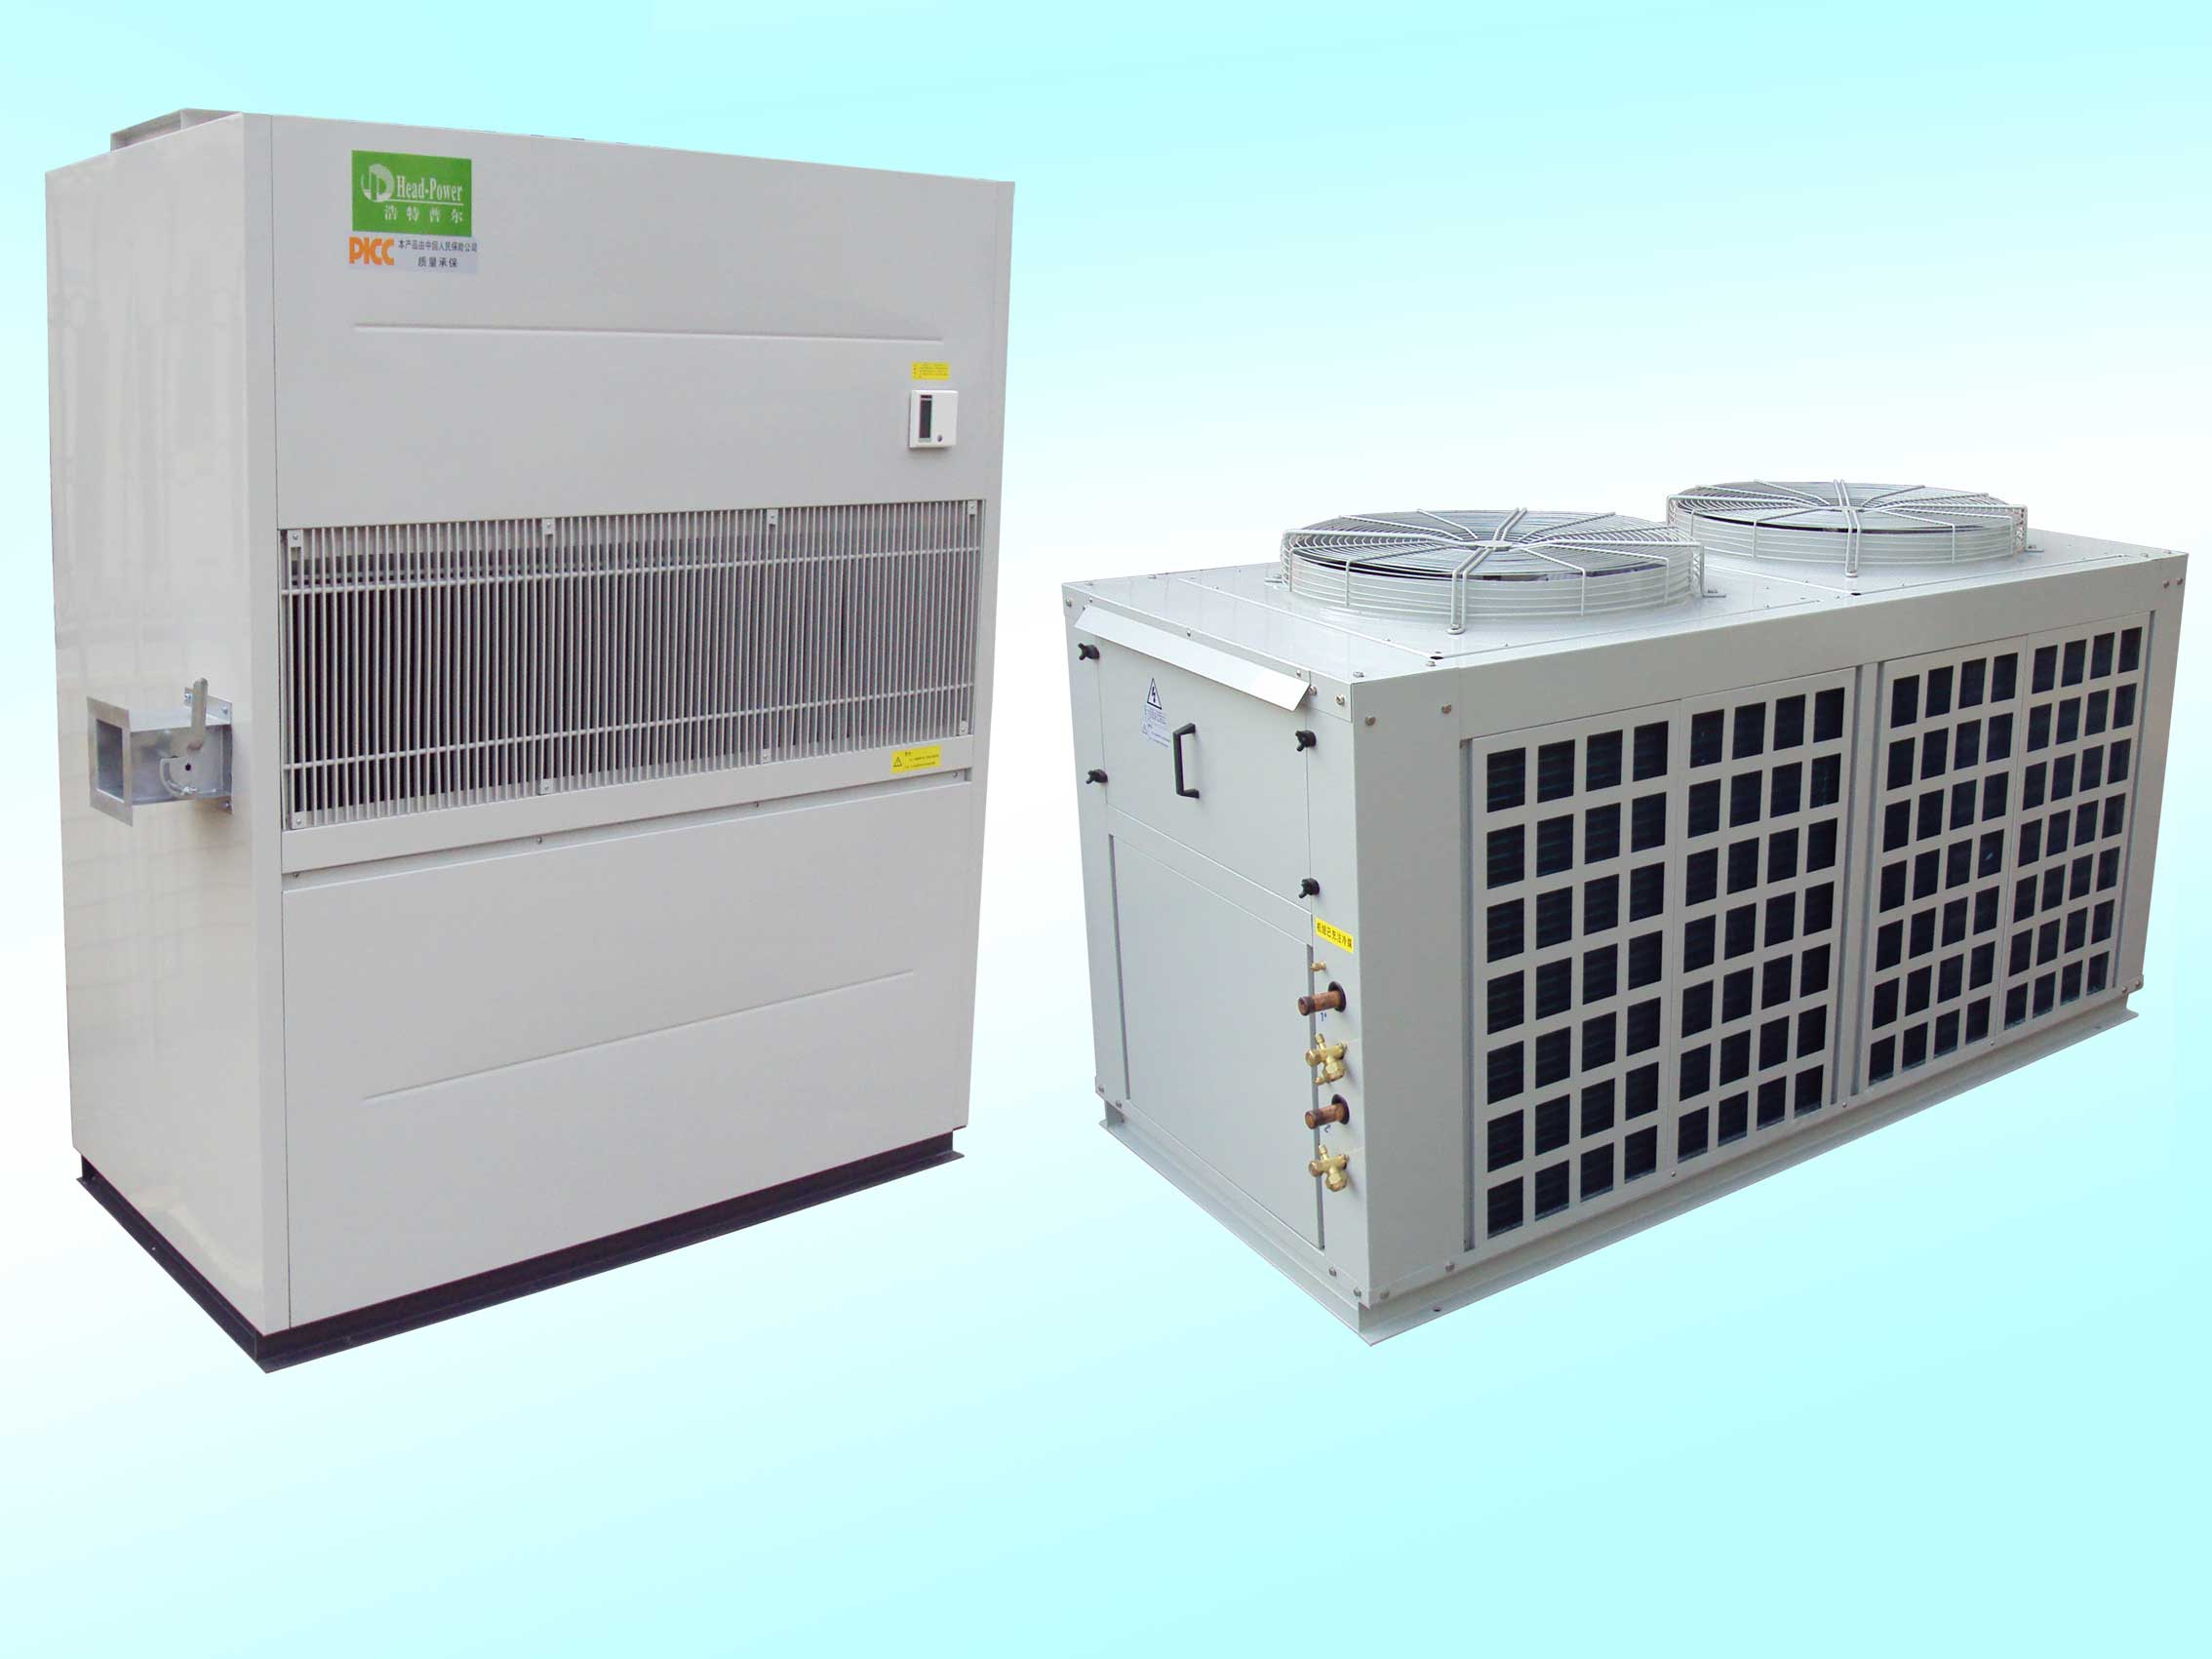 China used ac units wholesale 🇨🇳 - Alibaba